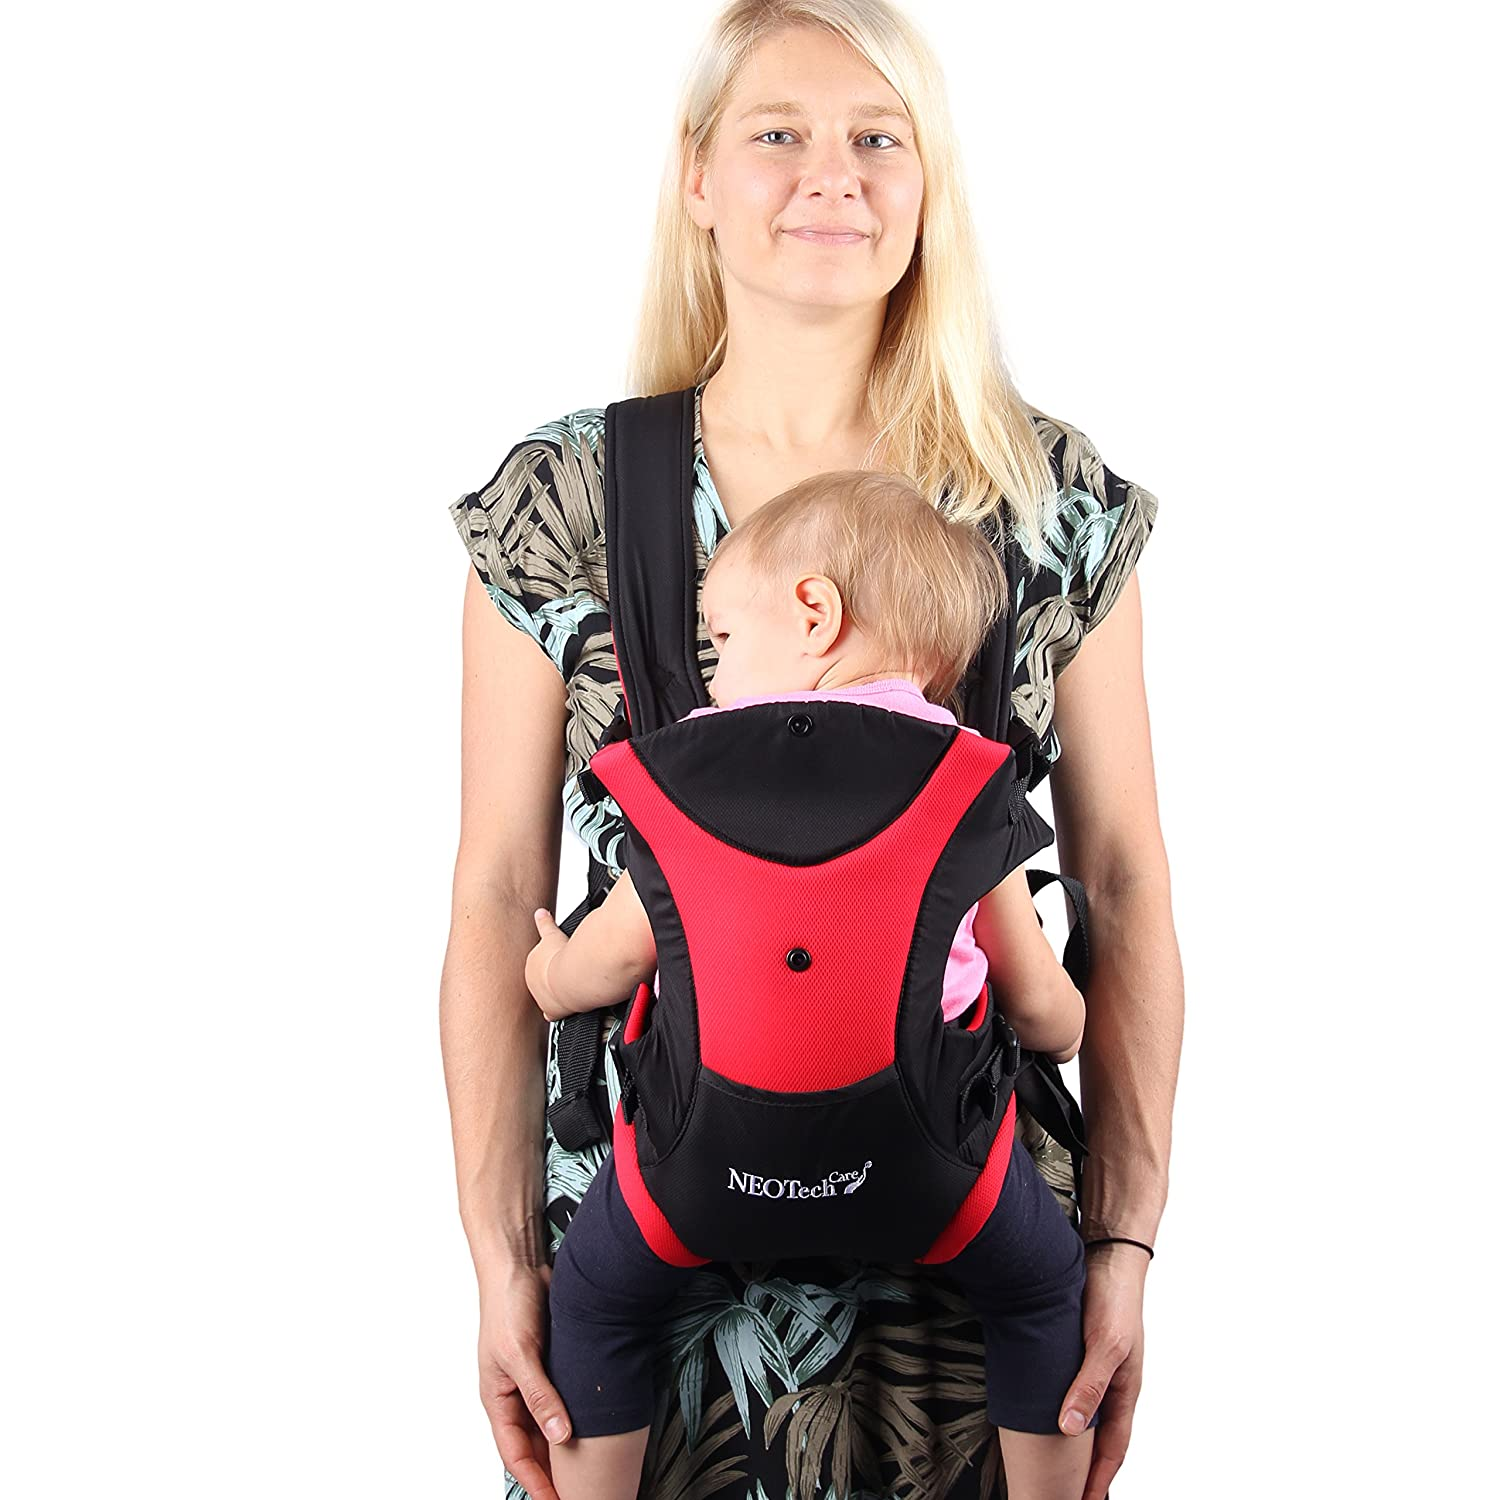 Neotech Care Hip Seat Baby Carrier - Front and Back - Adjustable & Breathable - Black and Red NTC-BC015 Red